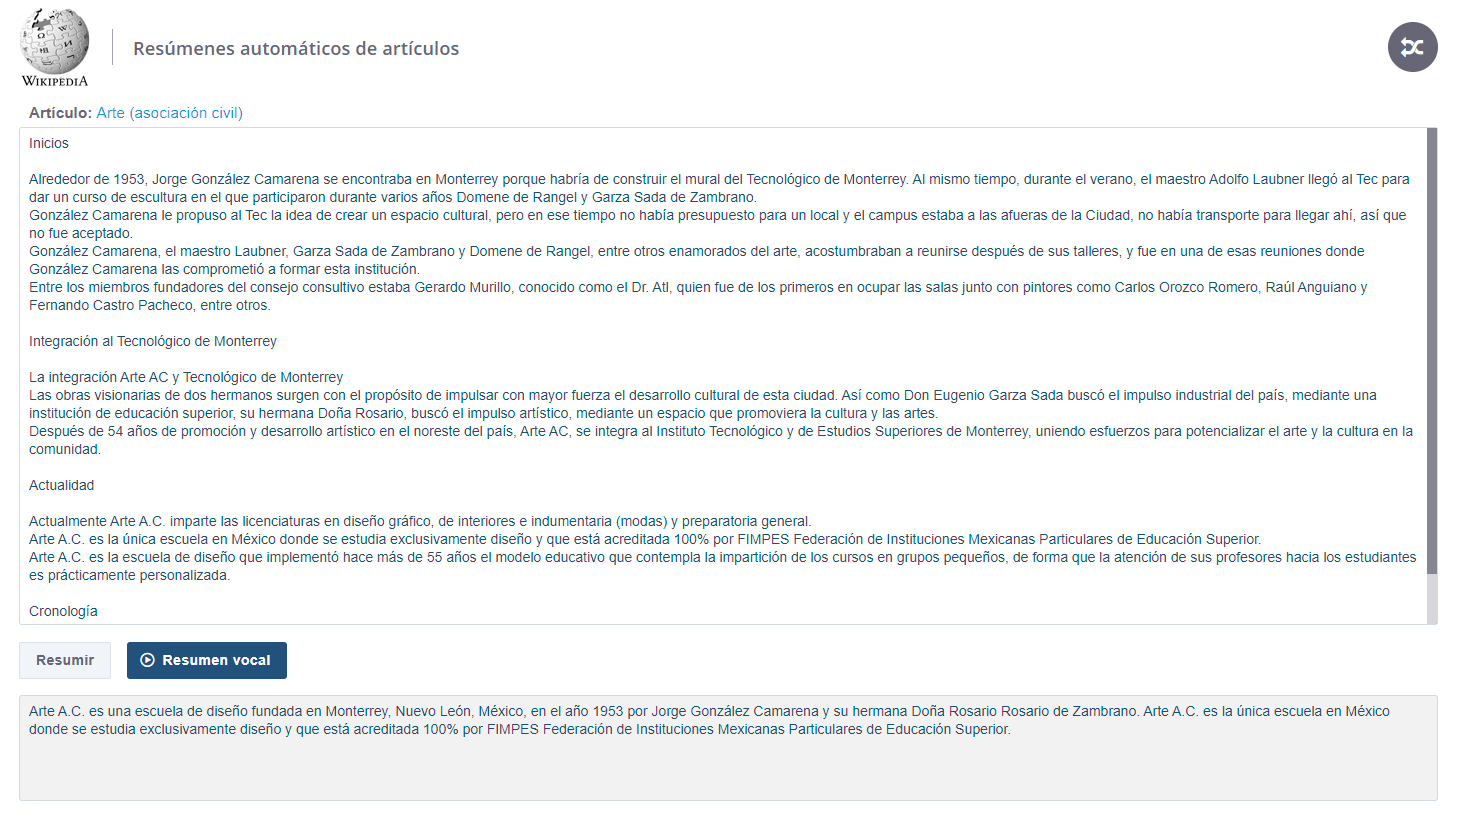 Wikipedia Spanish - Text and vocal summaries of Wikipedia articles in Spanish.